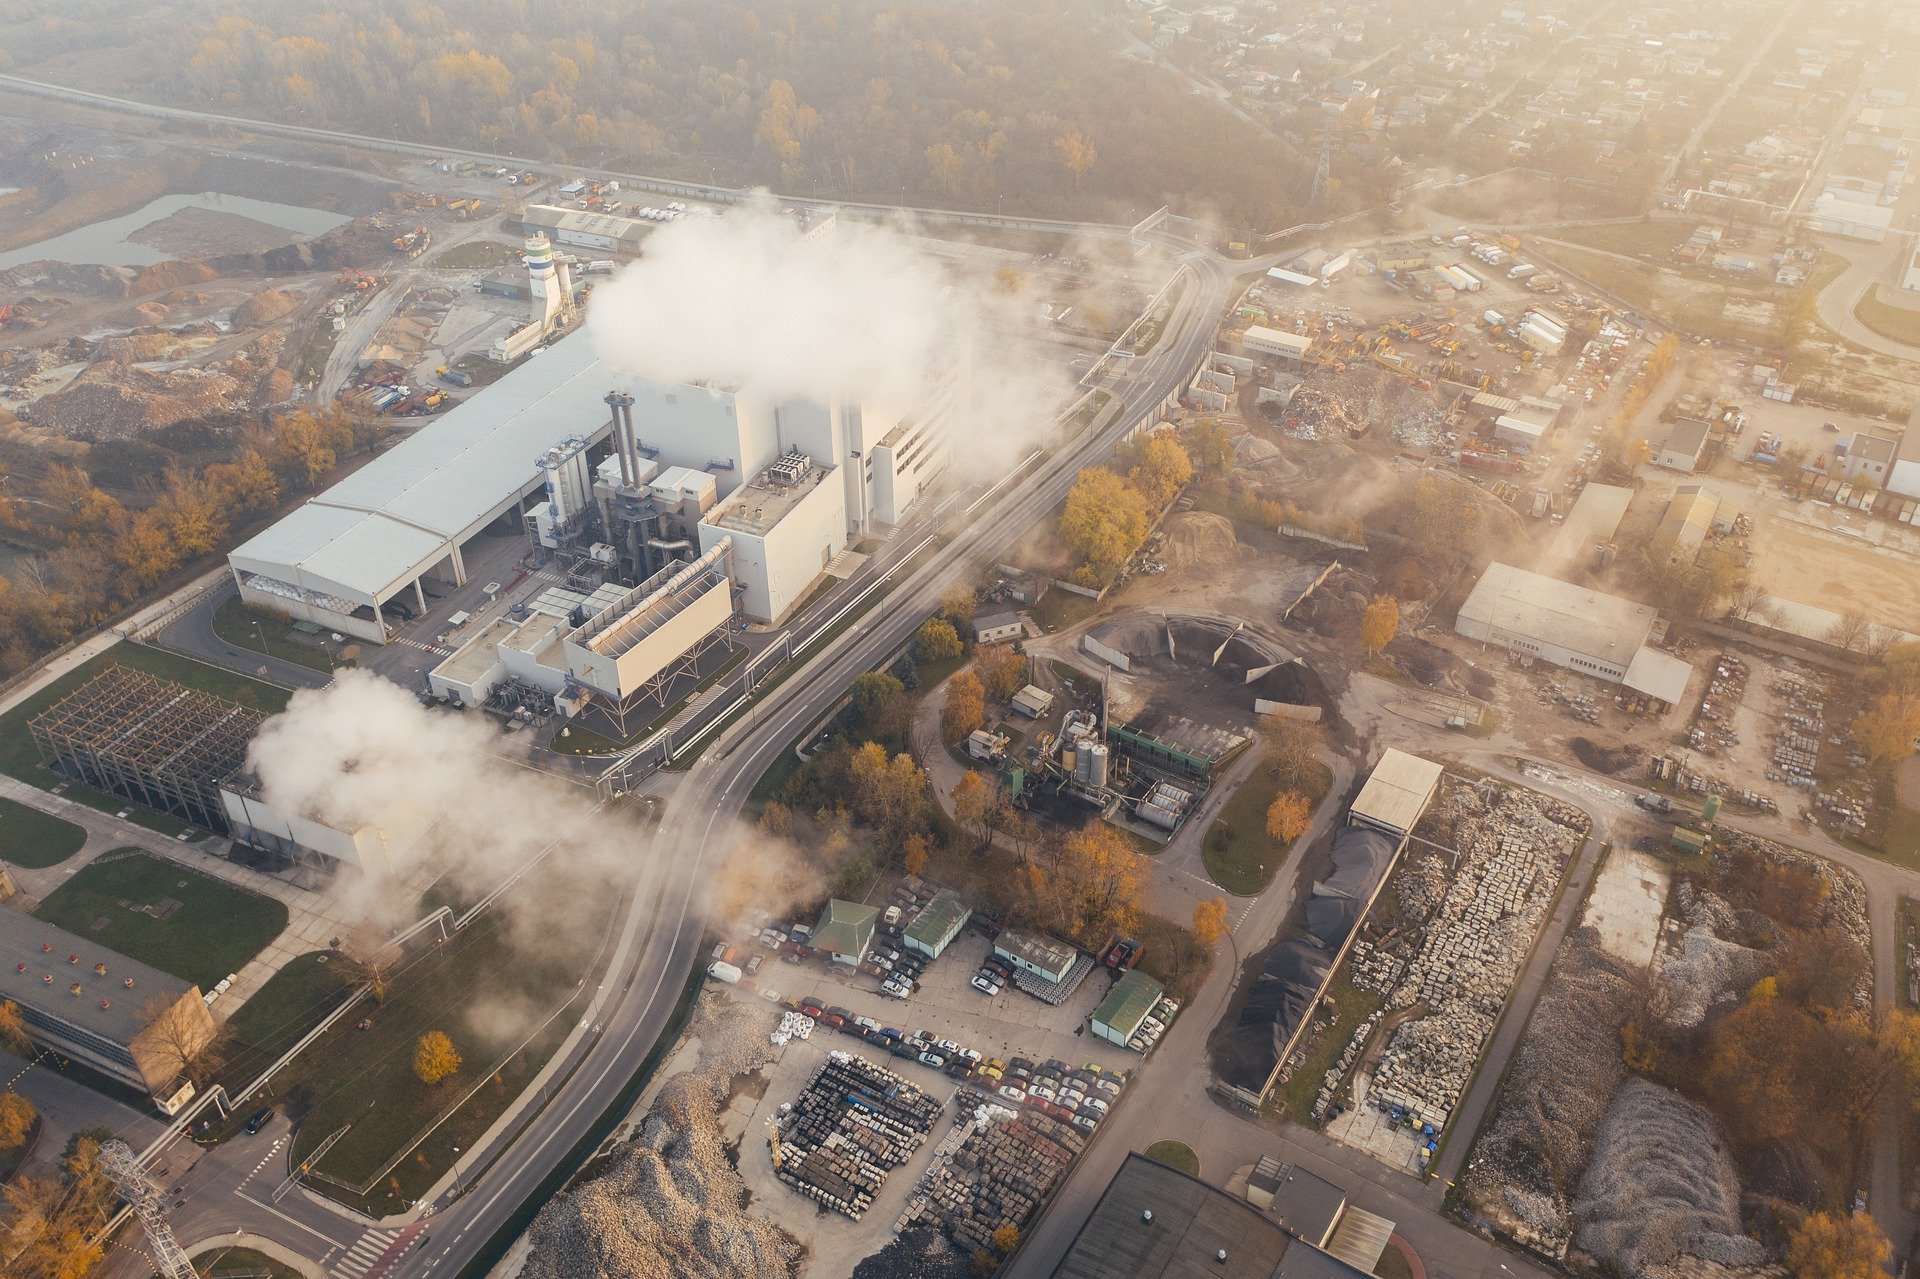 Achieving Greenhouse Gas Goals